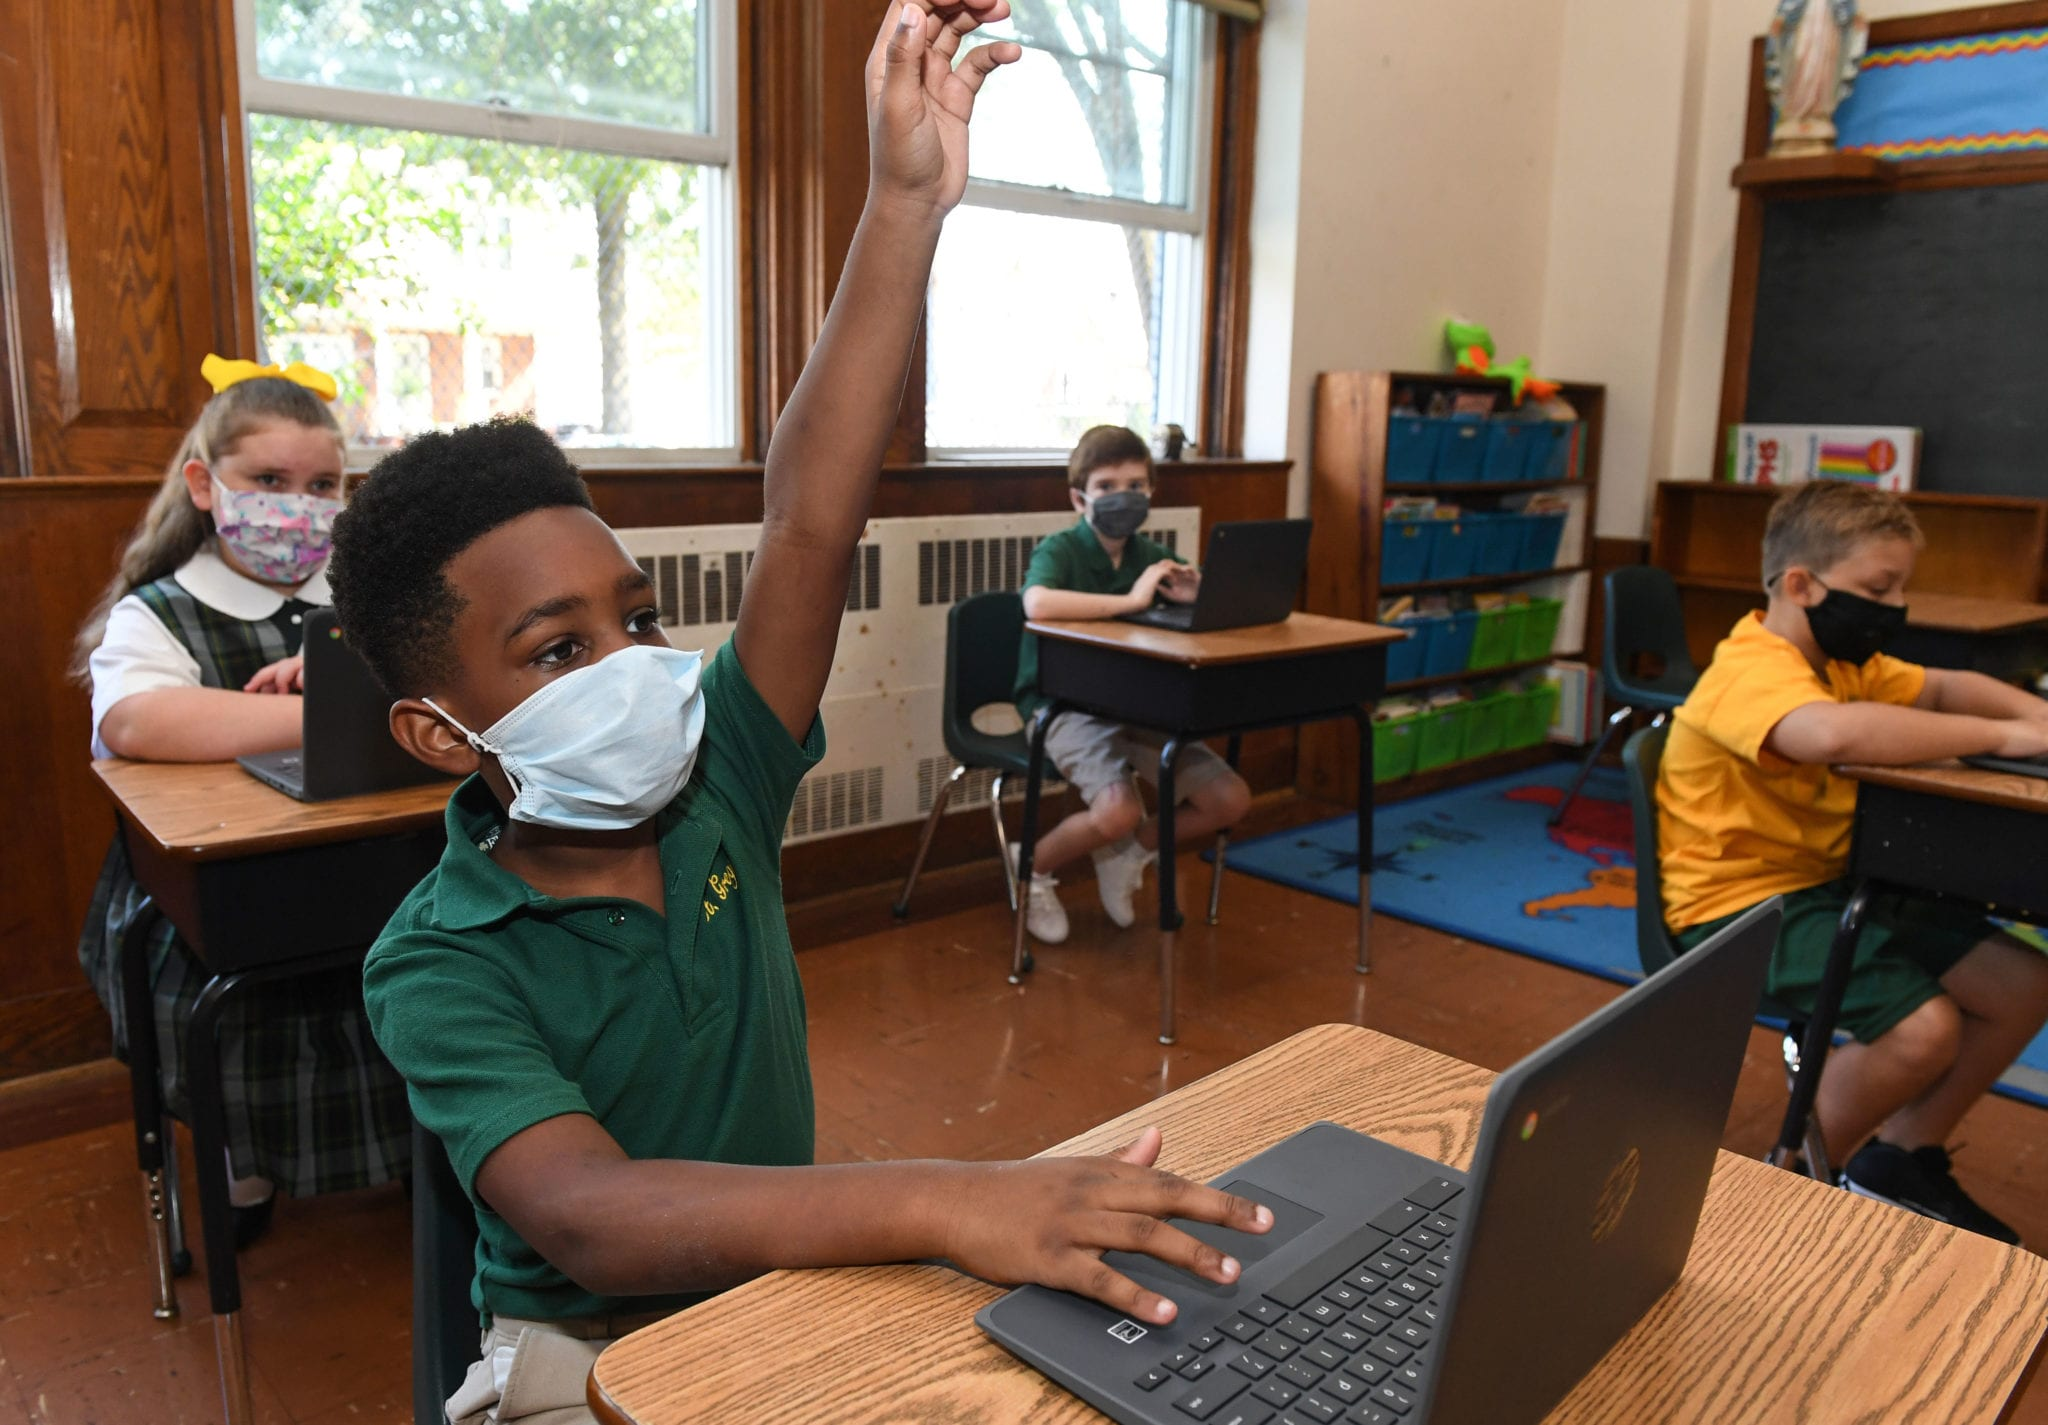 Children Being Safe in the classroom wearing masks and using chrome books